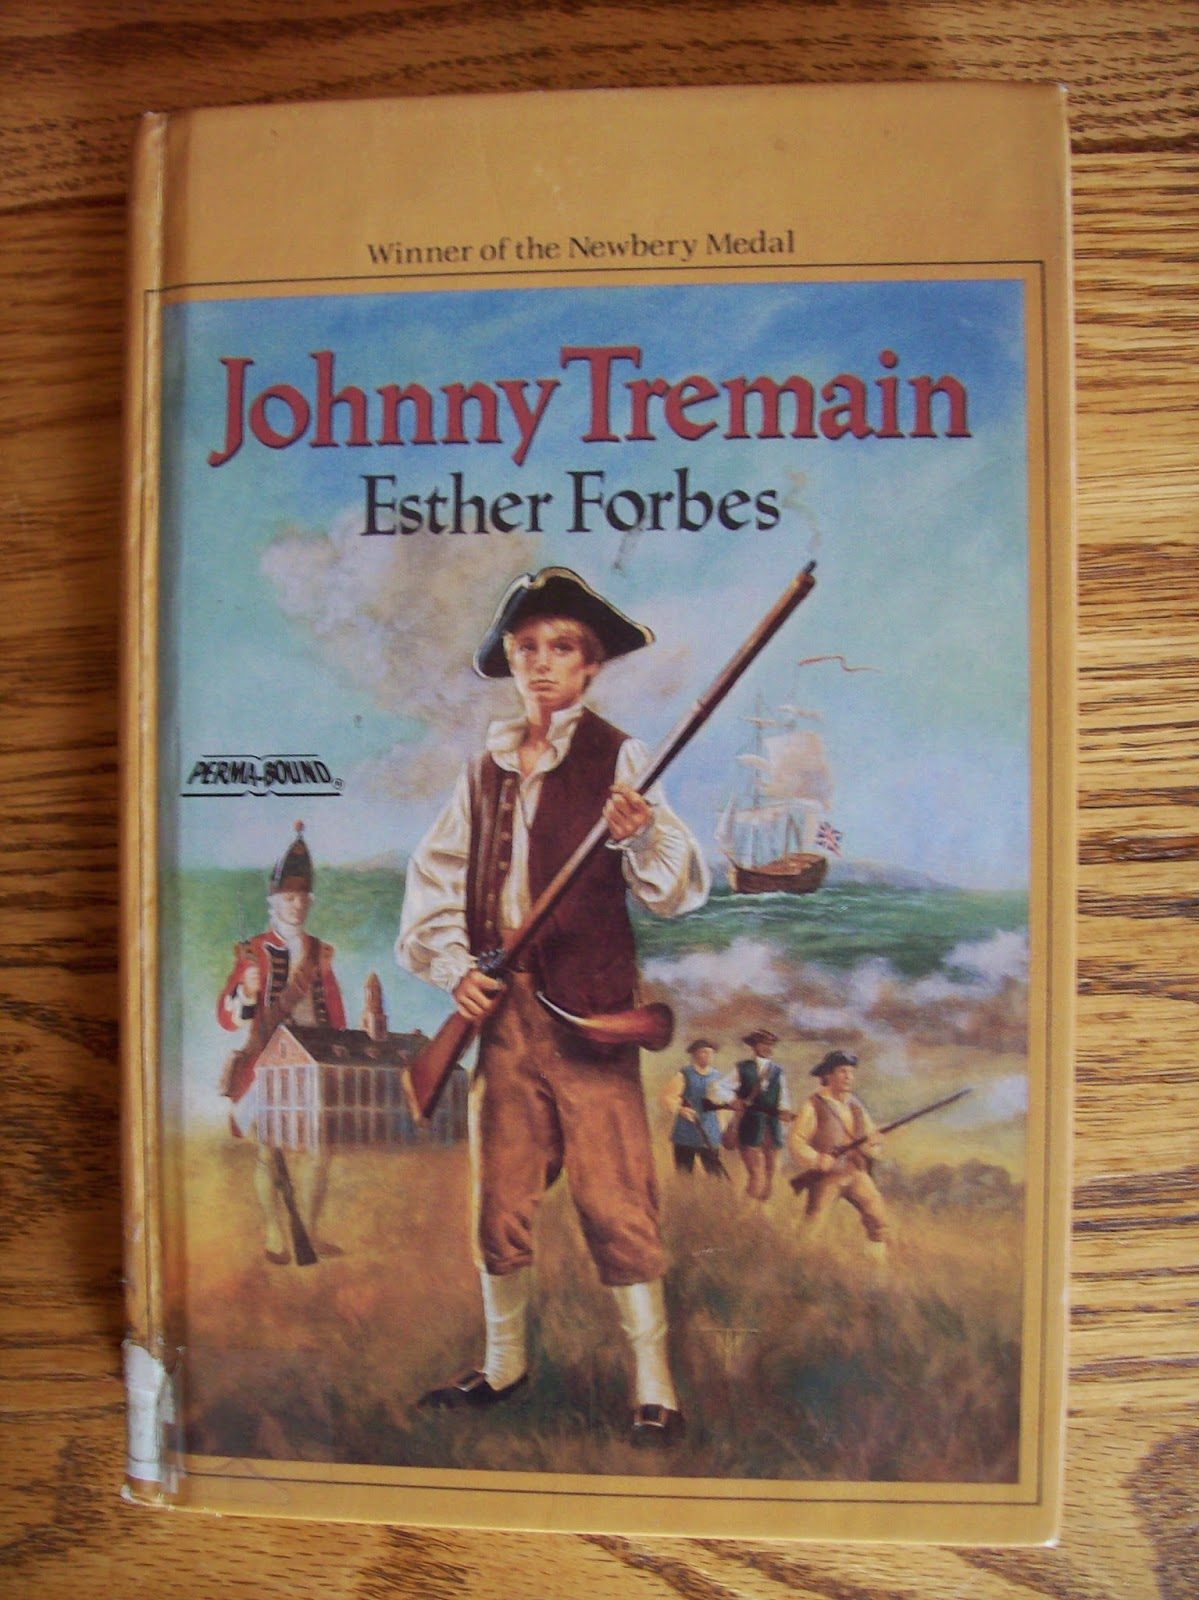 johnny tremain pride A description of tropes appearing in johnny tremain coming-of-age story set during the revolutionary war mr lapham pointedly makes johnny read the pride before a fall passage at breakfast in order to humiliate him, with puritanically good intentions been there, shaped history: among other things, johnny.